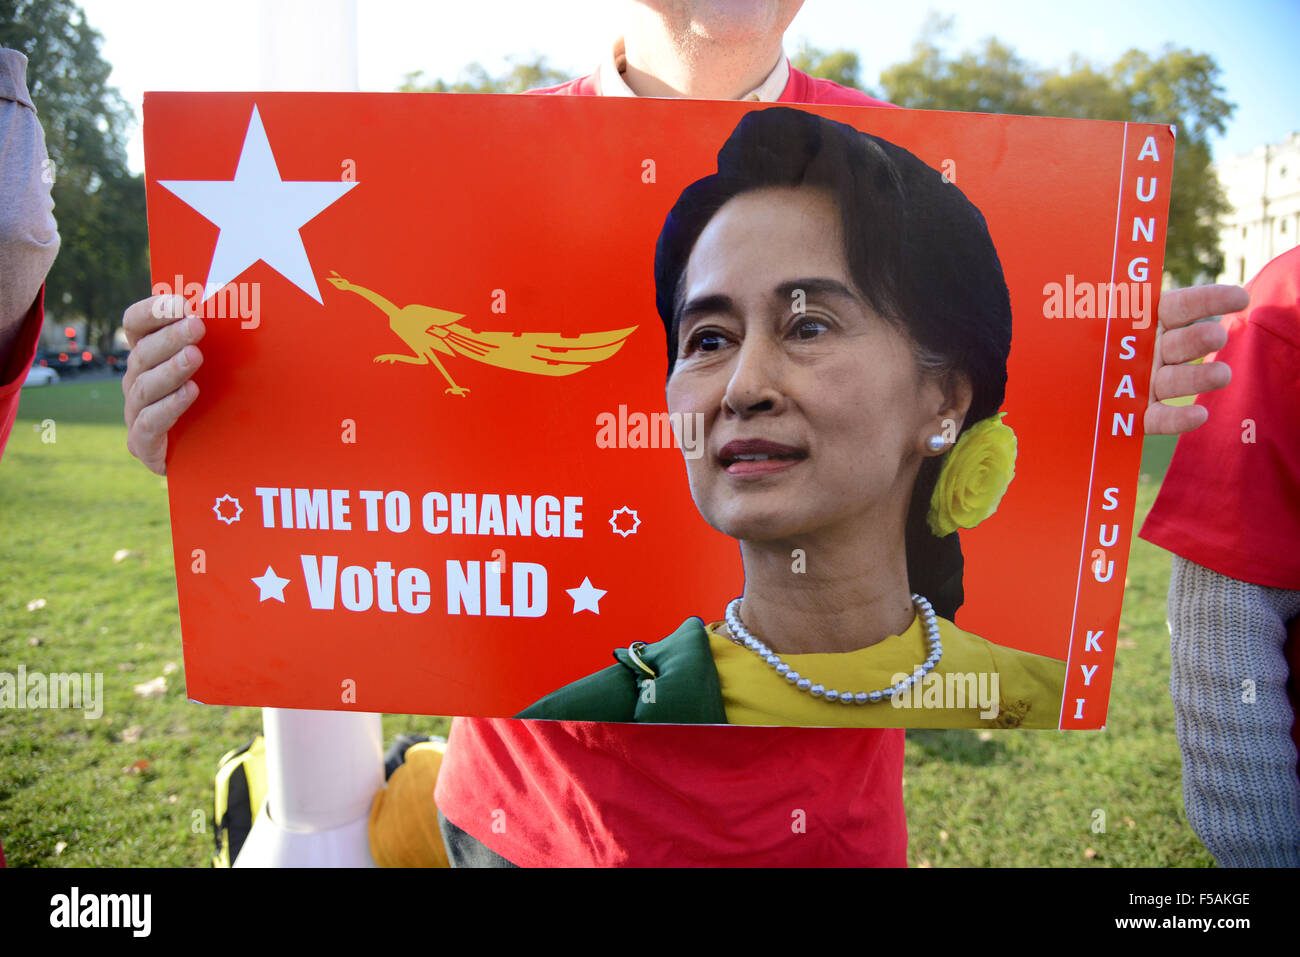 National League for Democracy in Burma campaign outside parliament in London, Britain, UK - Stock Image